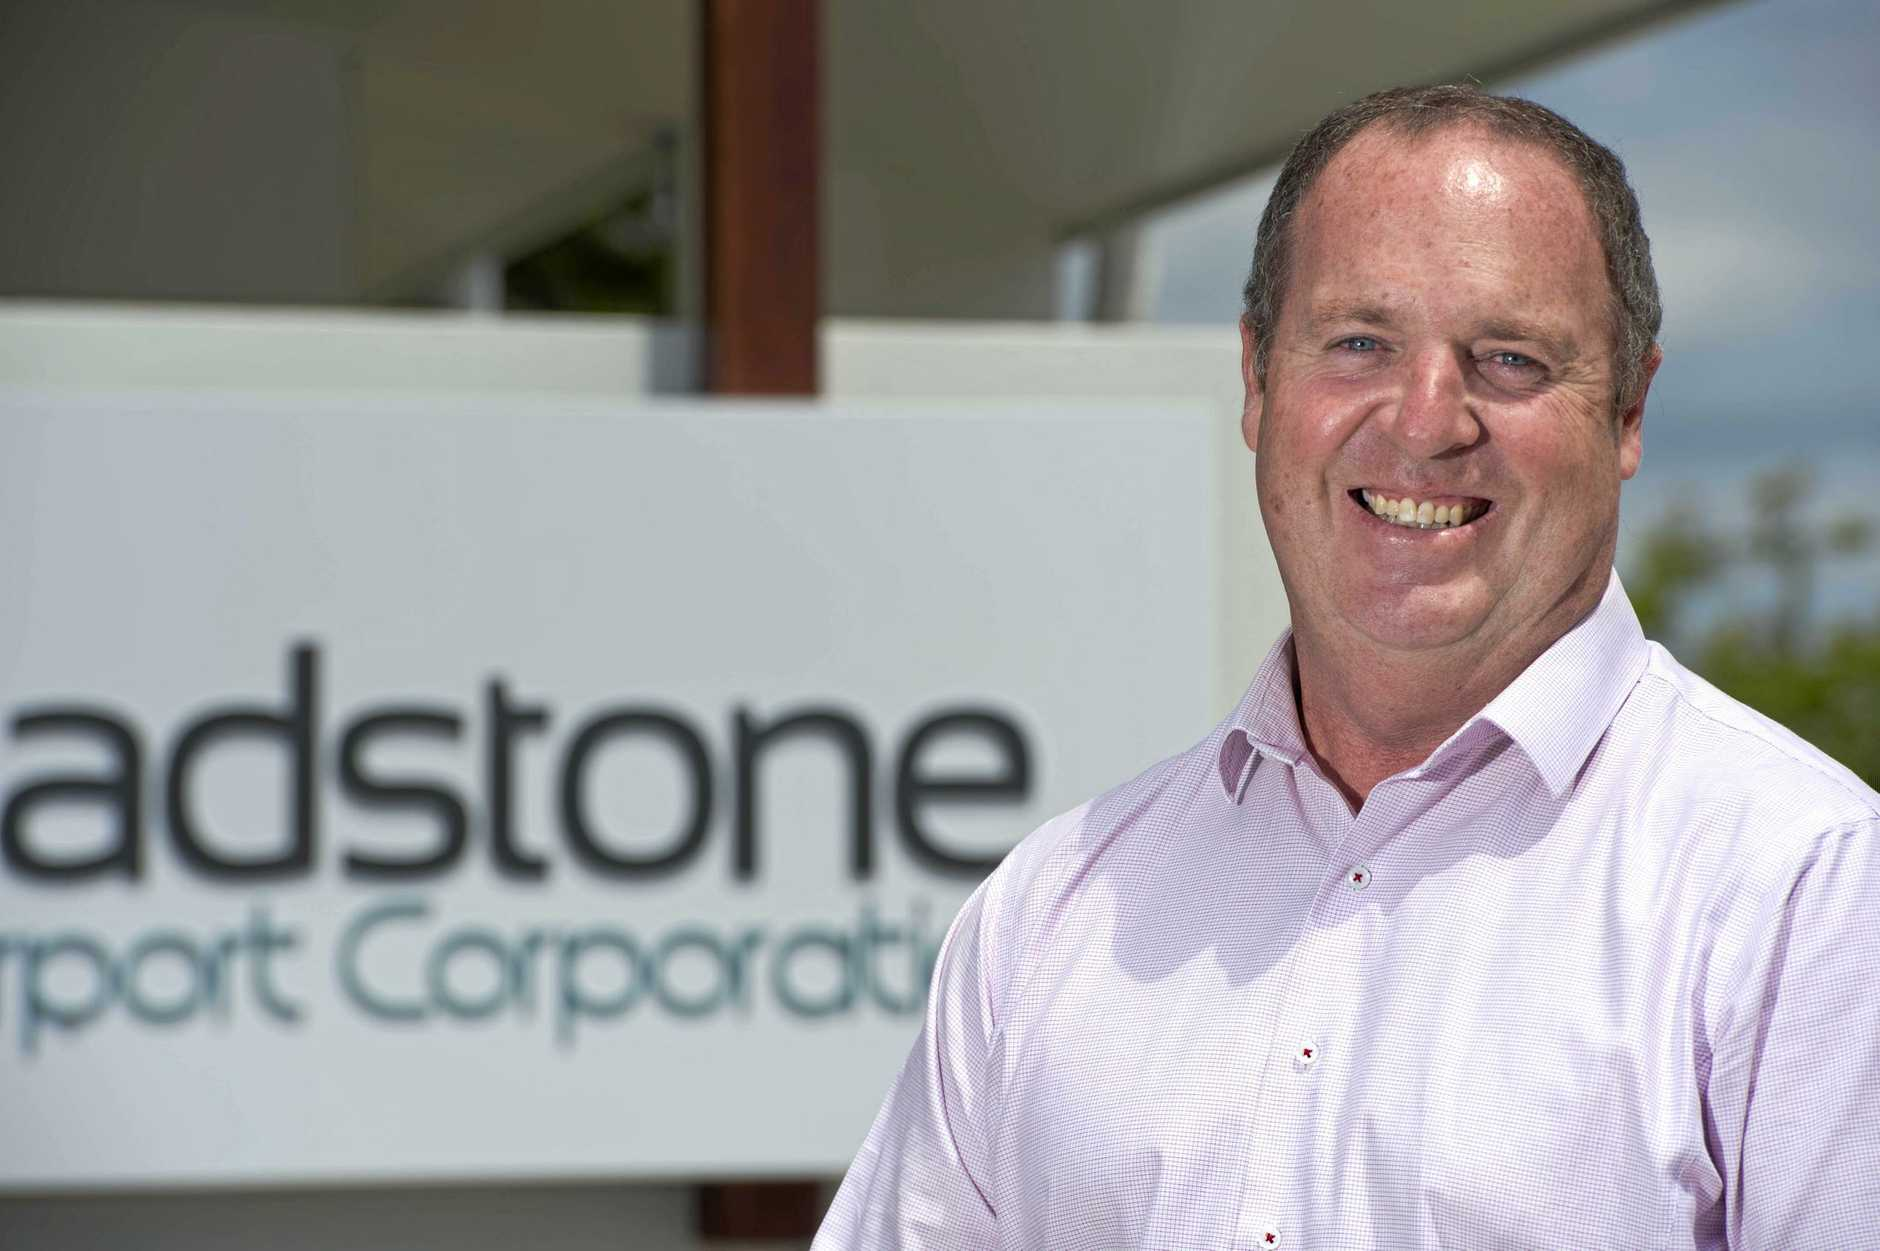 CEO of Gladstone Airport Corporation, Peter Friel at his office.